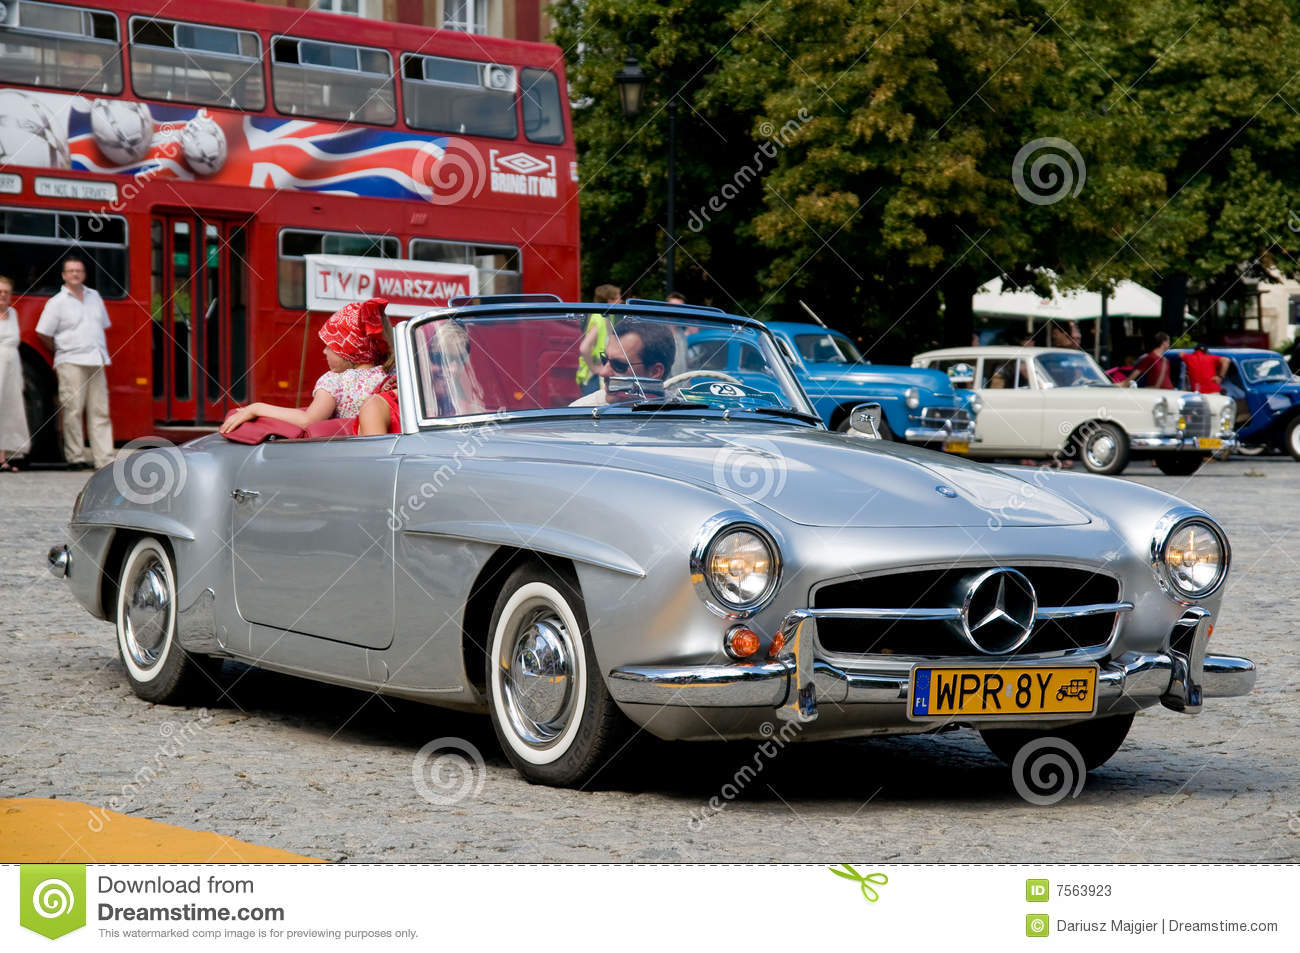 All Types 190 mercedes sl : 1962 Mercedes 190 SL editorial stock photo. Image of automobile ...